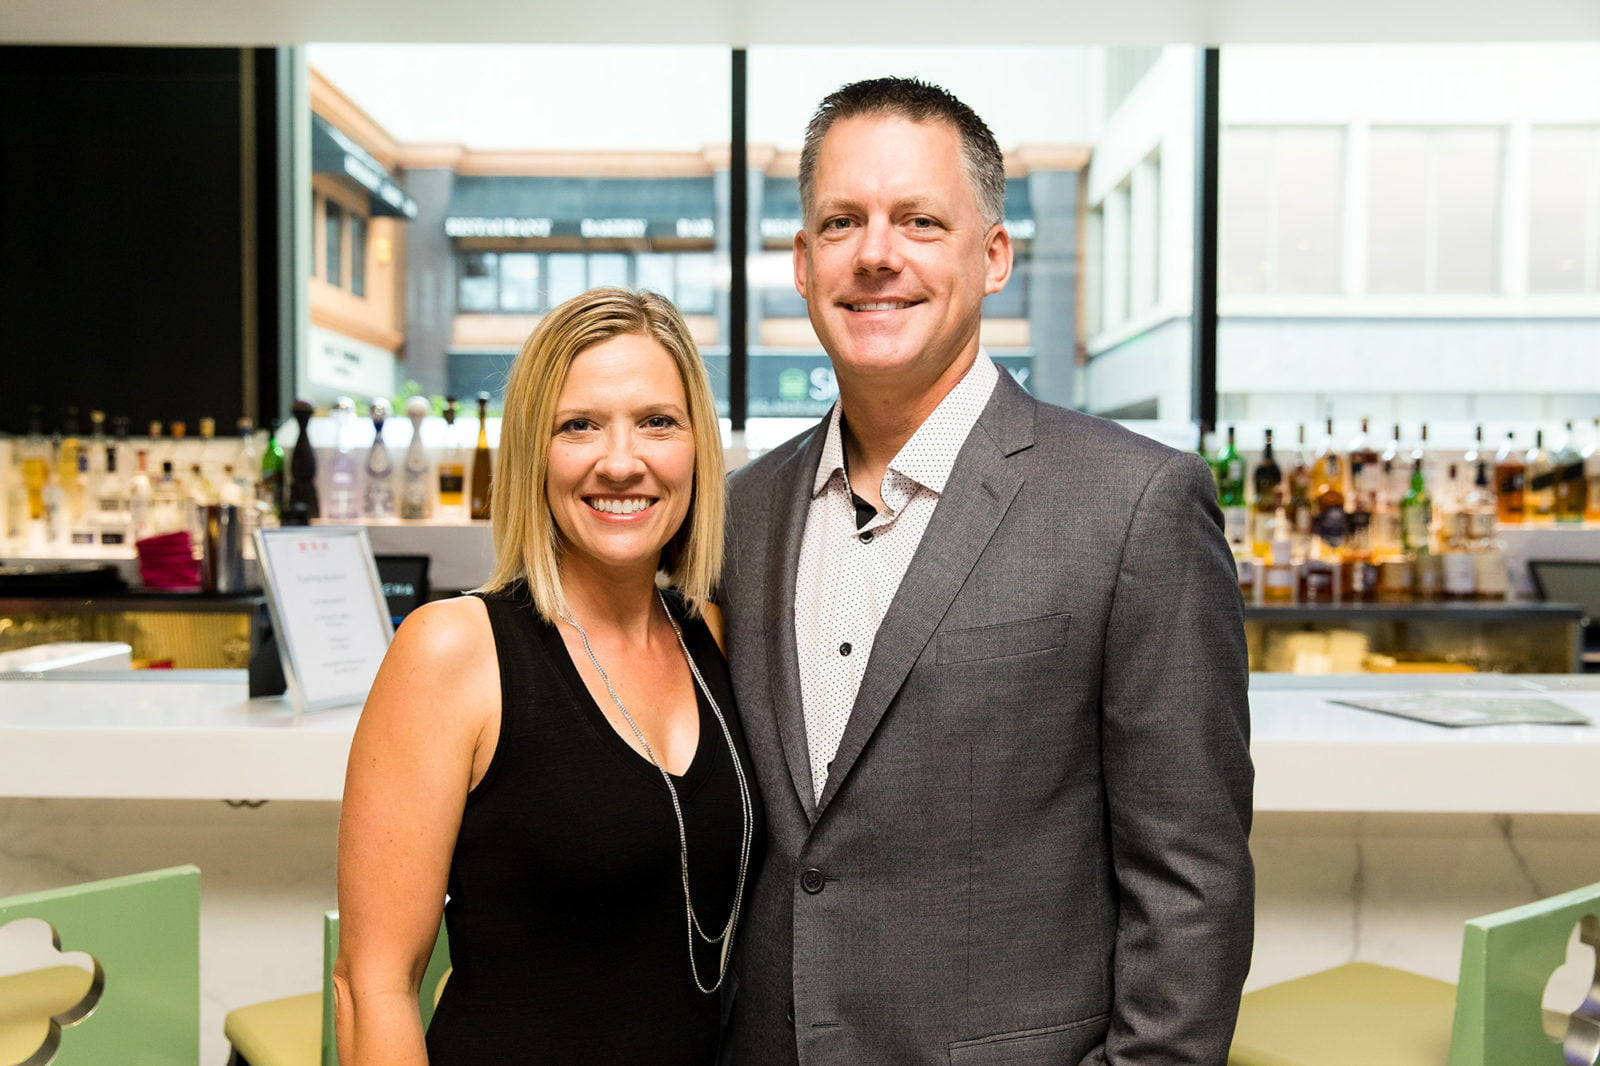 Astros' Manager A.J Hinch's Wife Erin Hinch